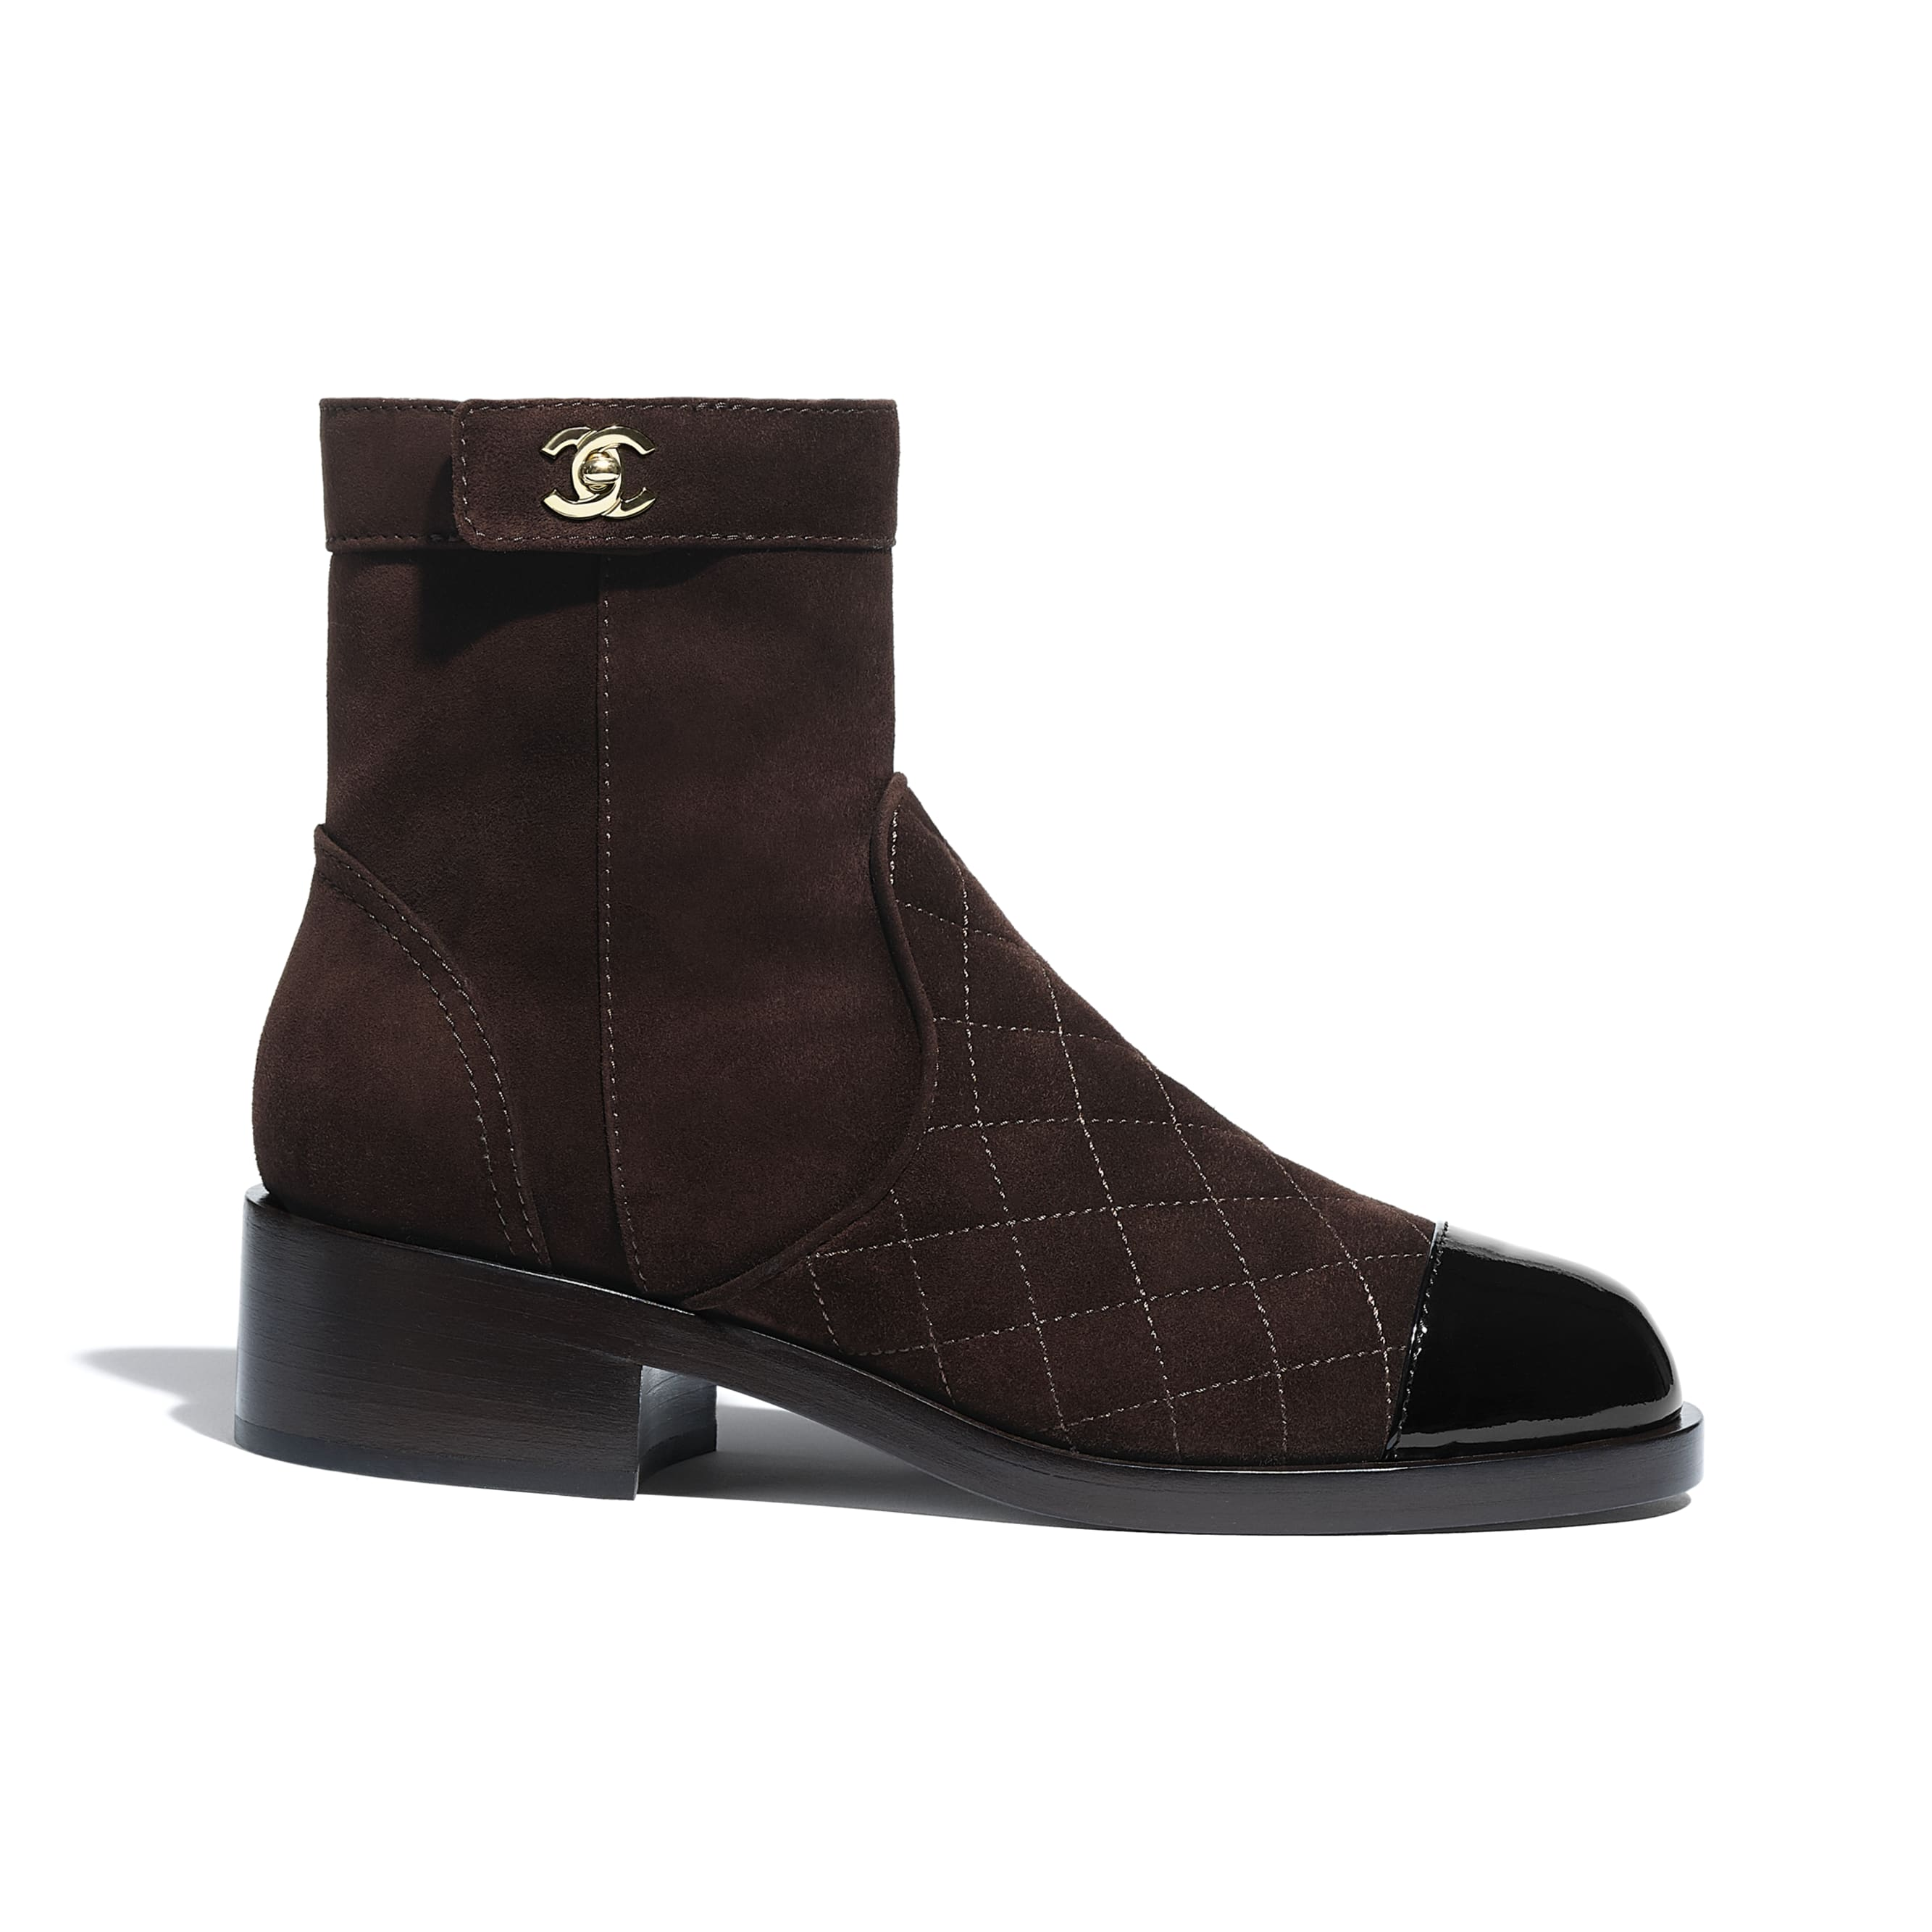 Ankle Boots - Brown & Black - Suede Calfskin & Patent Calfskin - CHANEL - Default view - see standard sized version